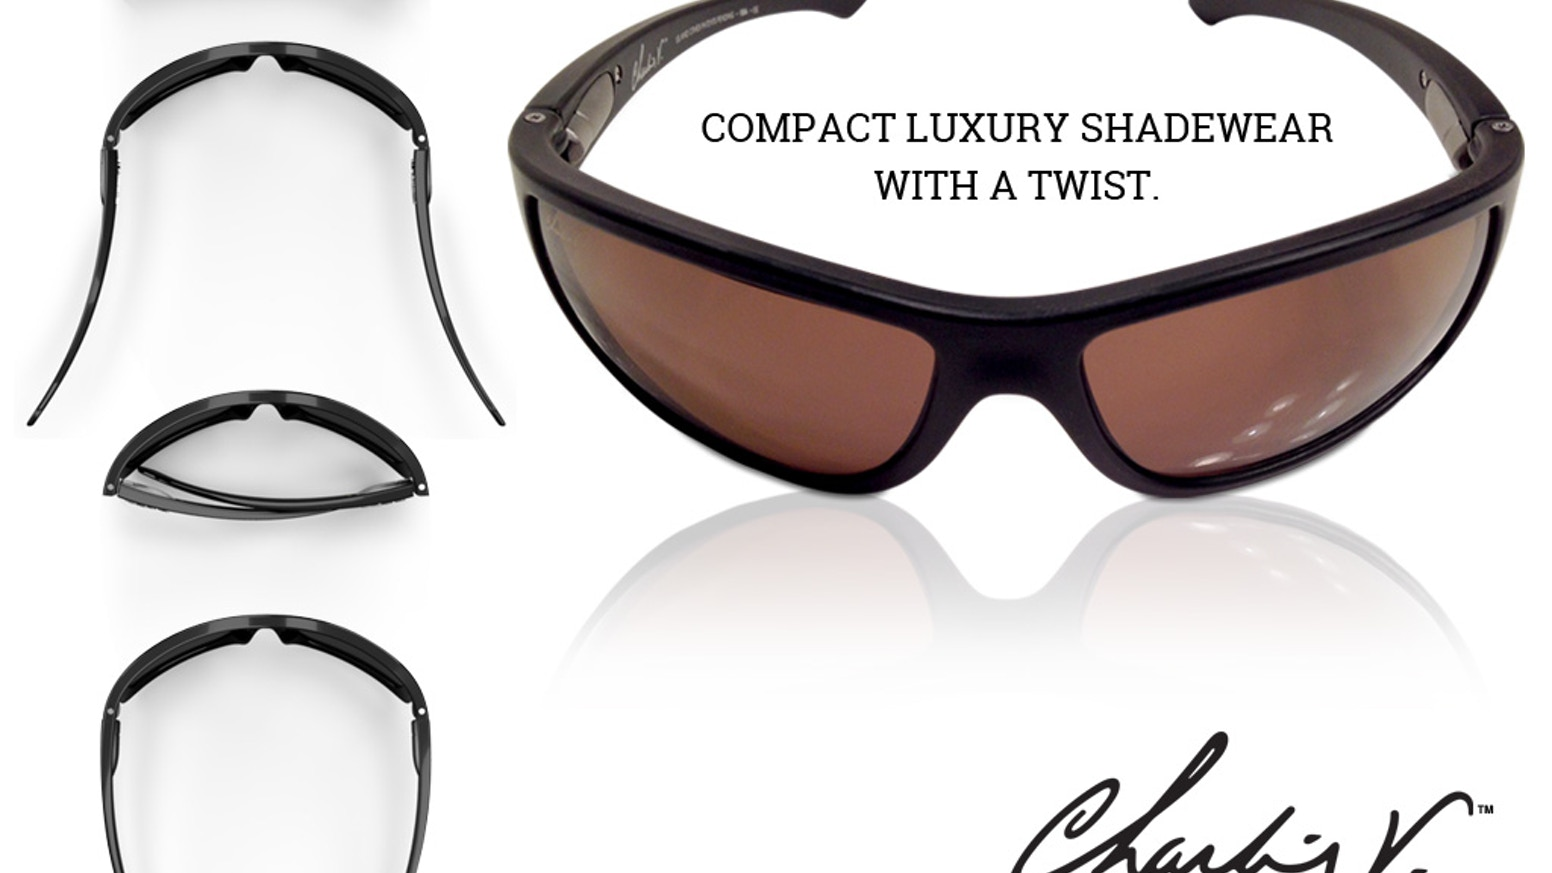 Charlie V Sunglasses are precision engineered with an exclusive, twist and pivot hinge design, for a more compact folding position